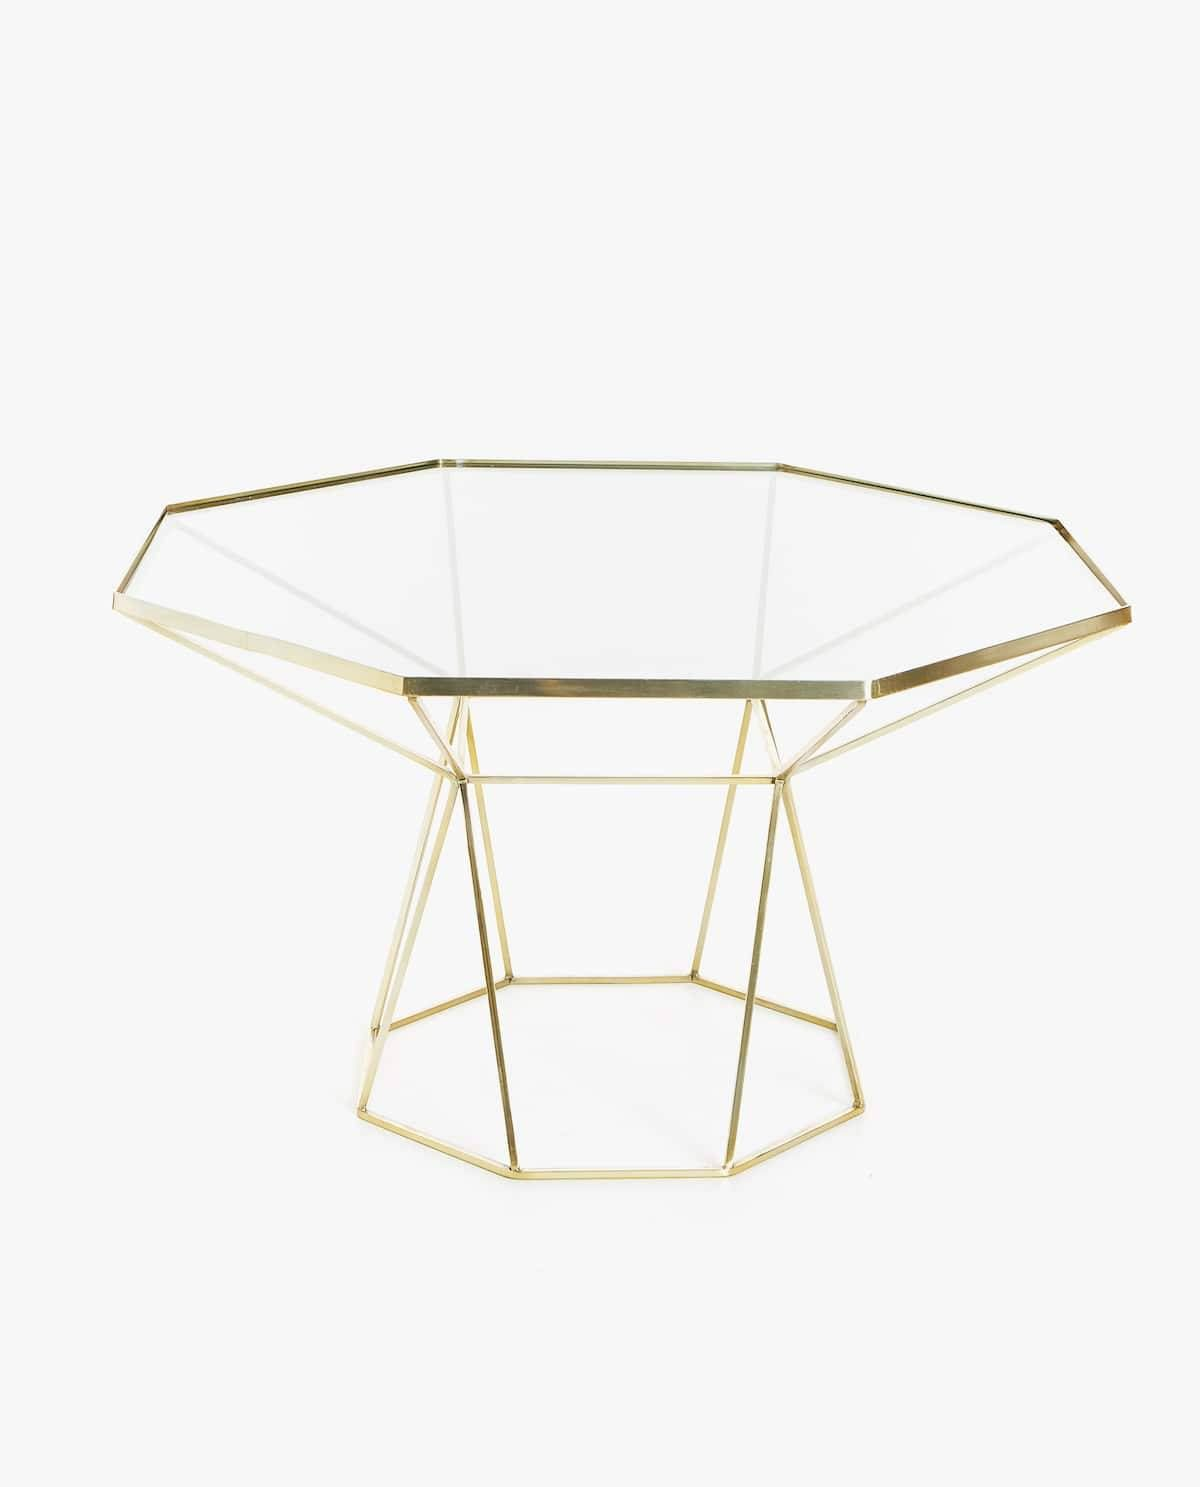 Zara Home S New Collection Is A Midcentury Italian Dream